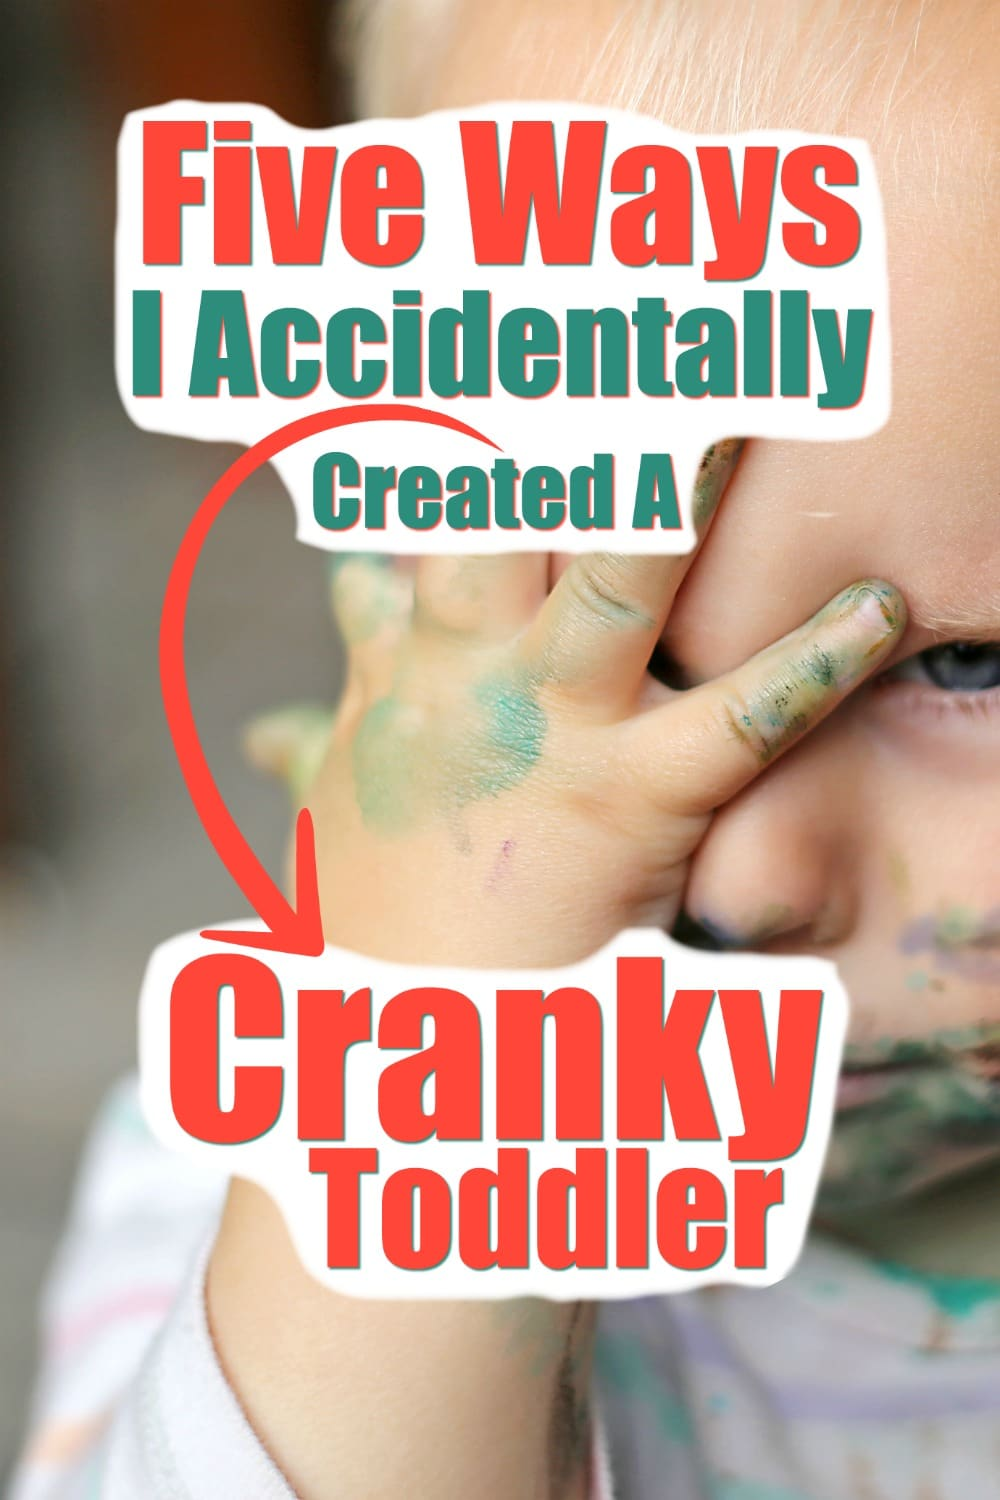 It's true...I accidetanlly created a stubborn, cranky, defiant toddler. My mothering style encouraged this crankiness and it needed to stop. Find out the five ways I created a cranky toddler so you can avoid them!